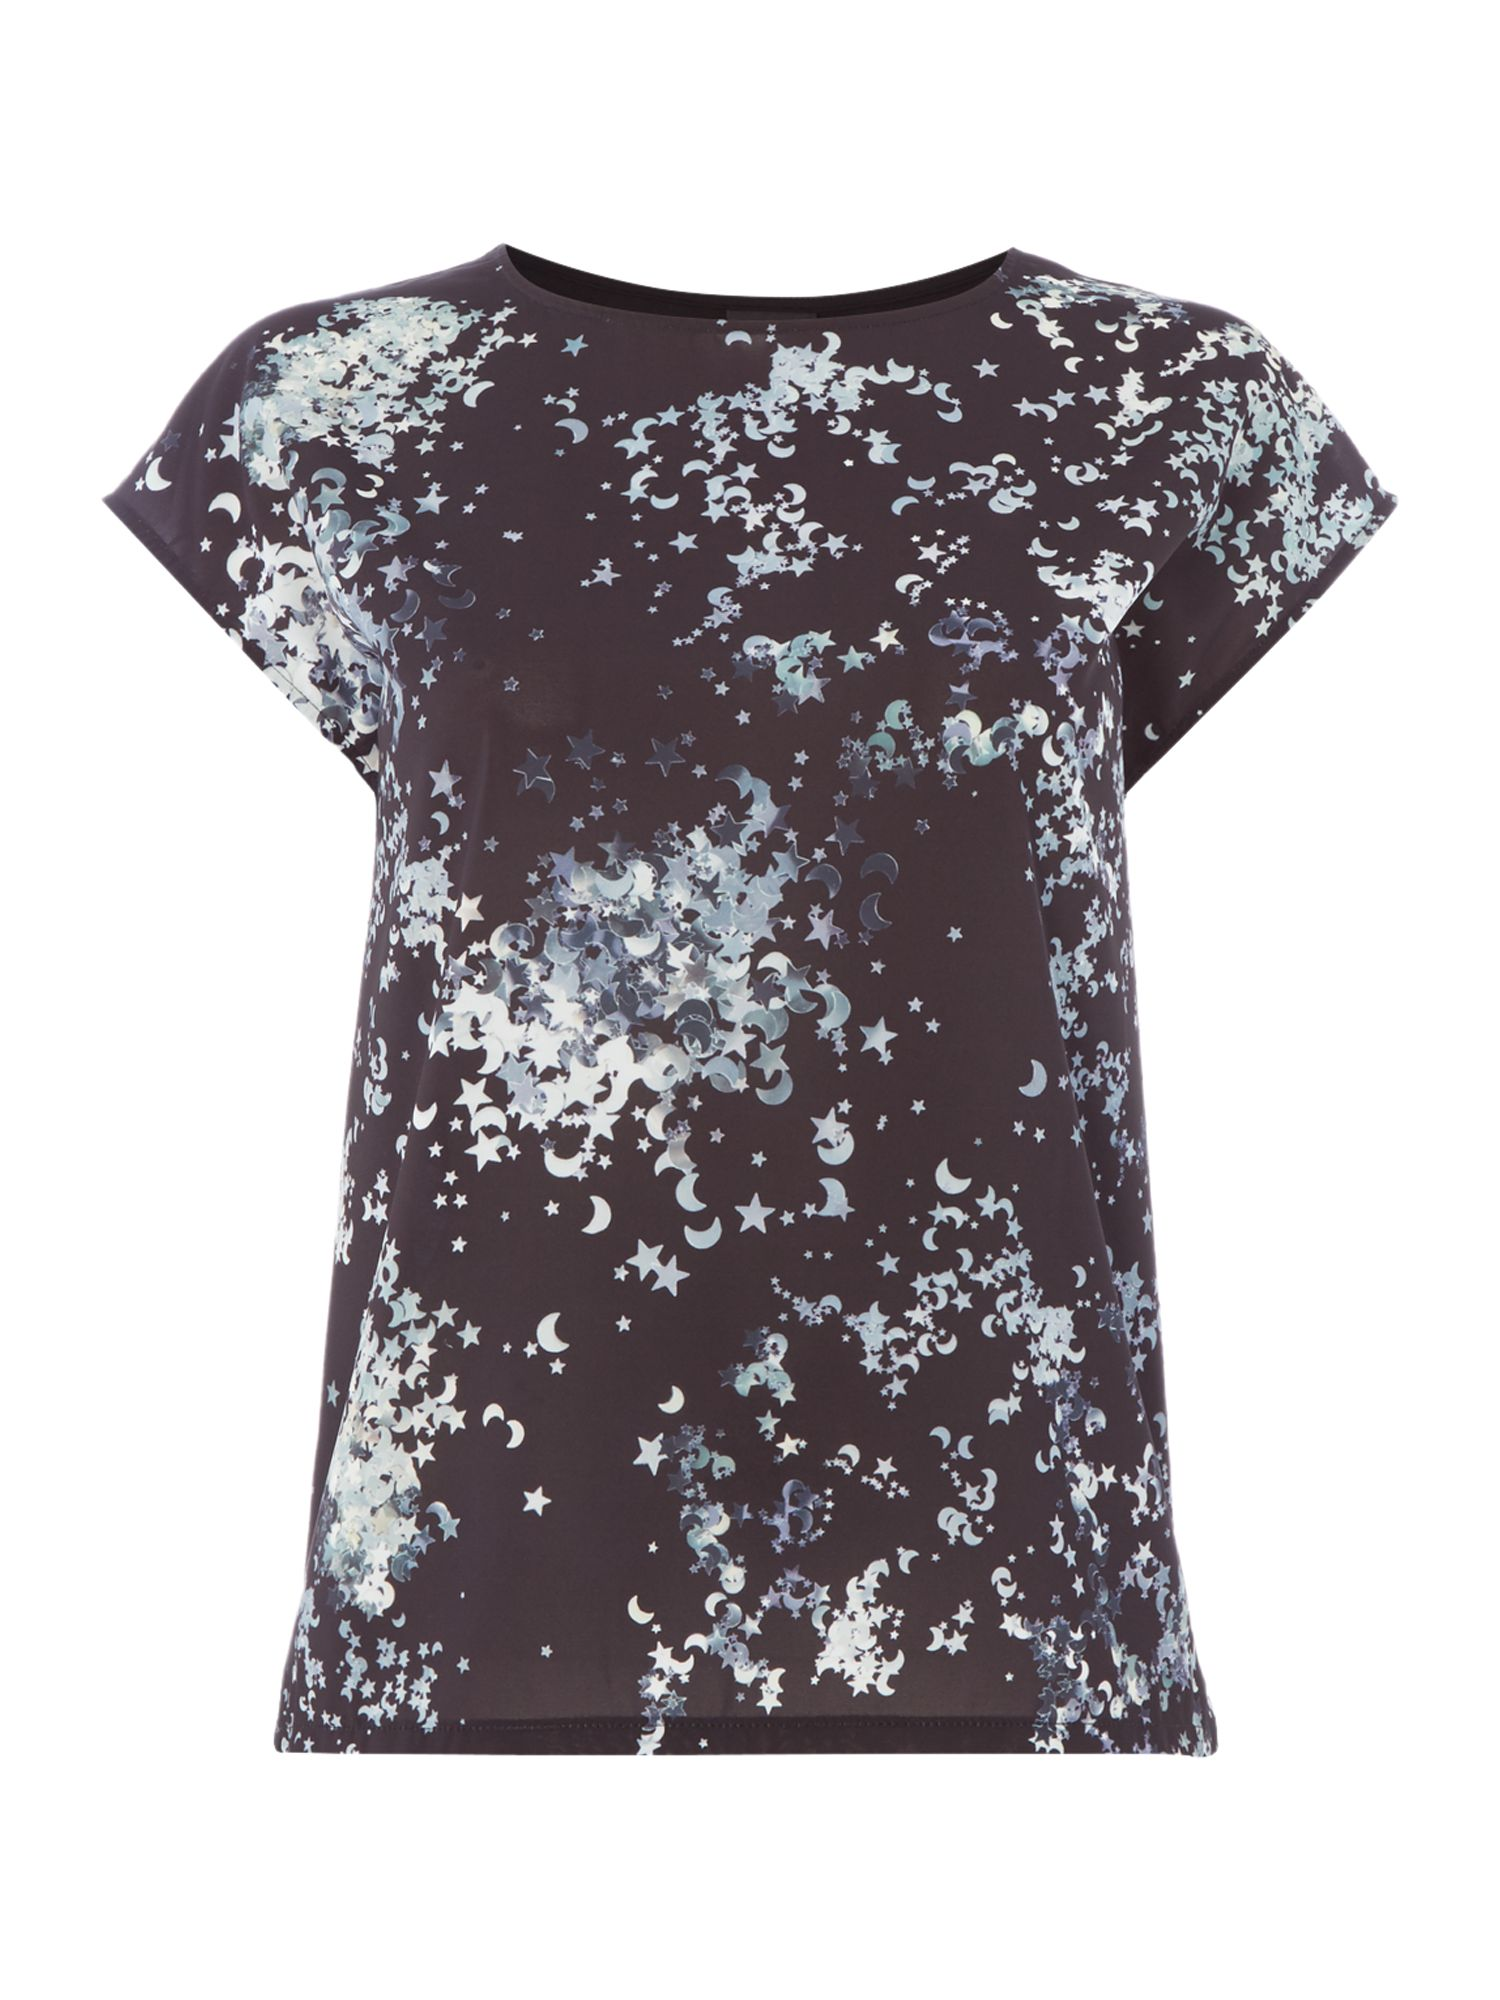 PS By Paul Smith Star front t-shirt, Black